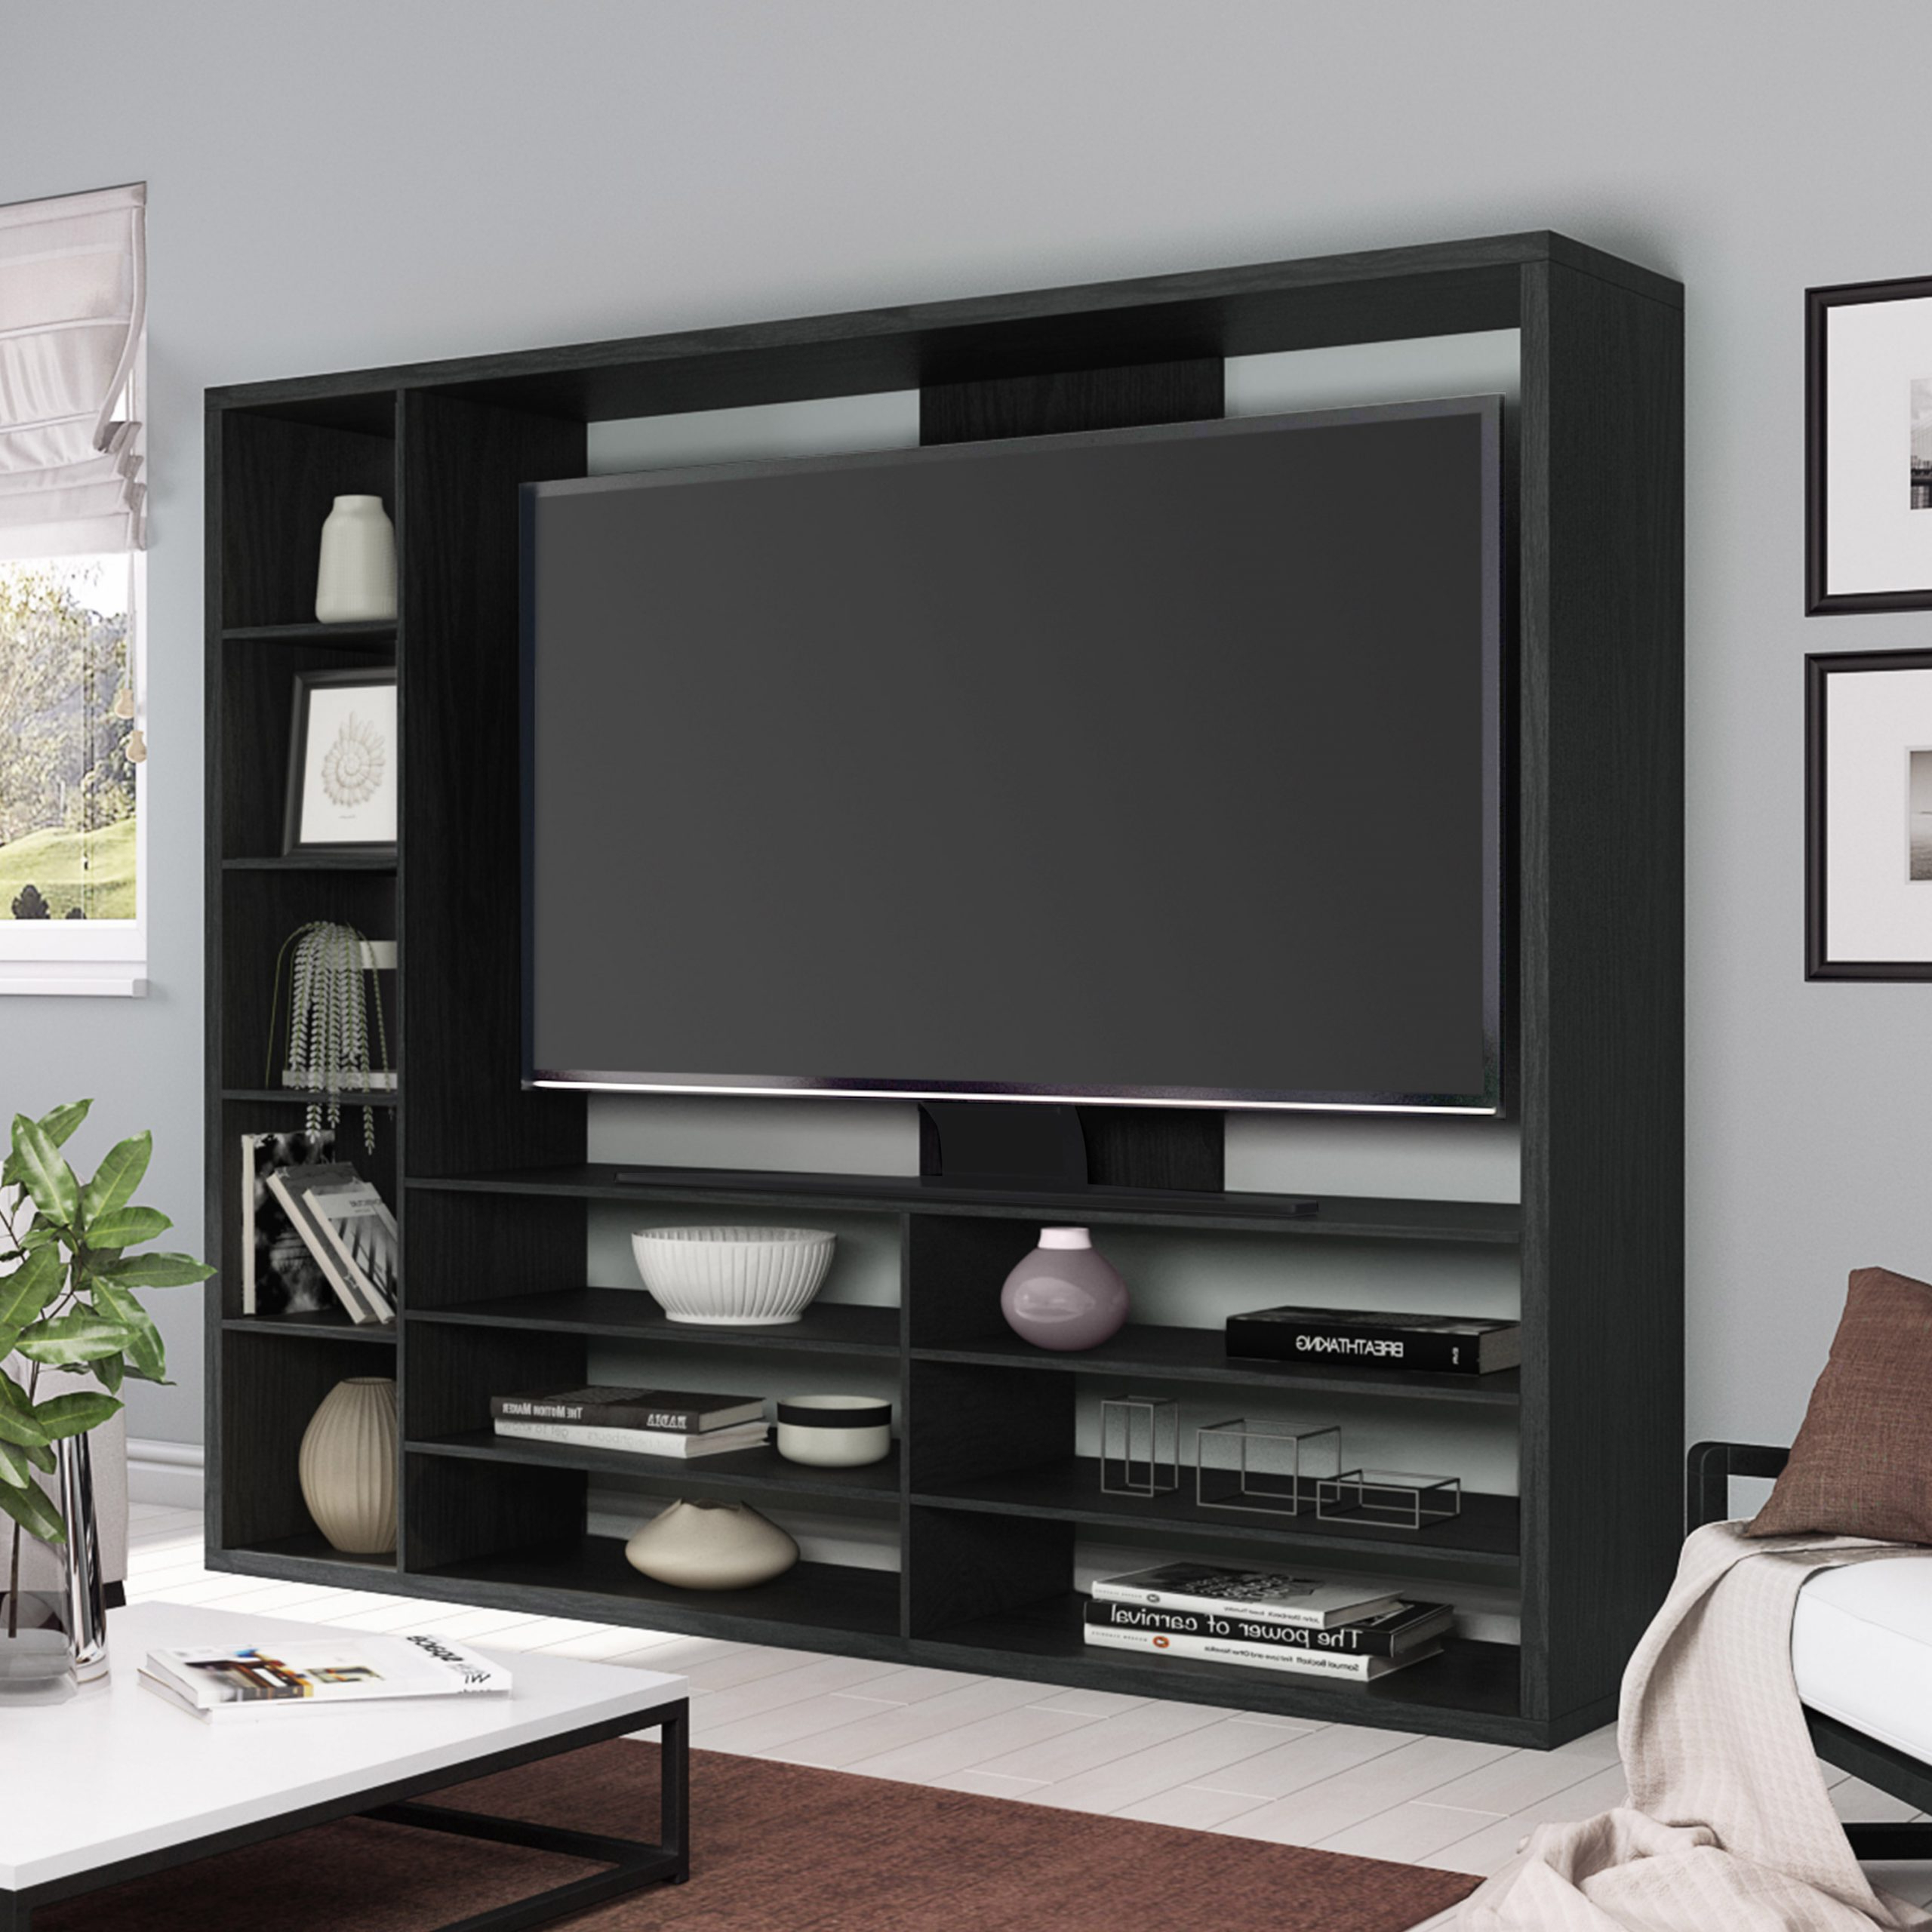 Entertainment Center Vs Tv Stand • Patio Ideas Pertaining To Most Popular Carbon Extra Wide Tv Unit Stands (View 6 of 10)